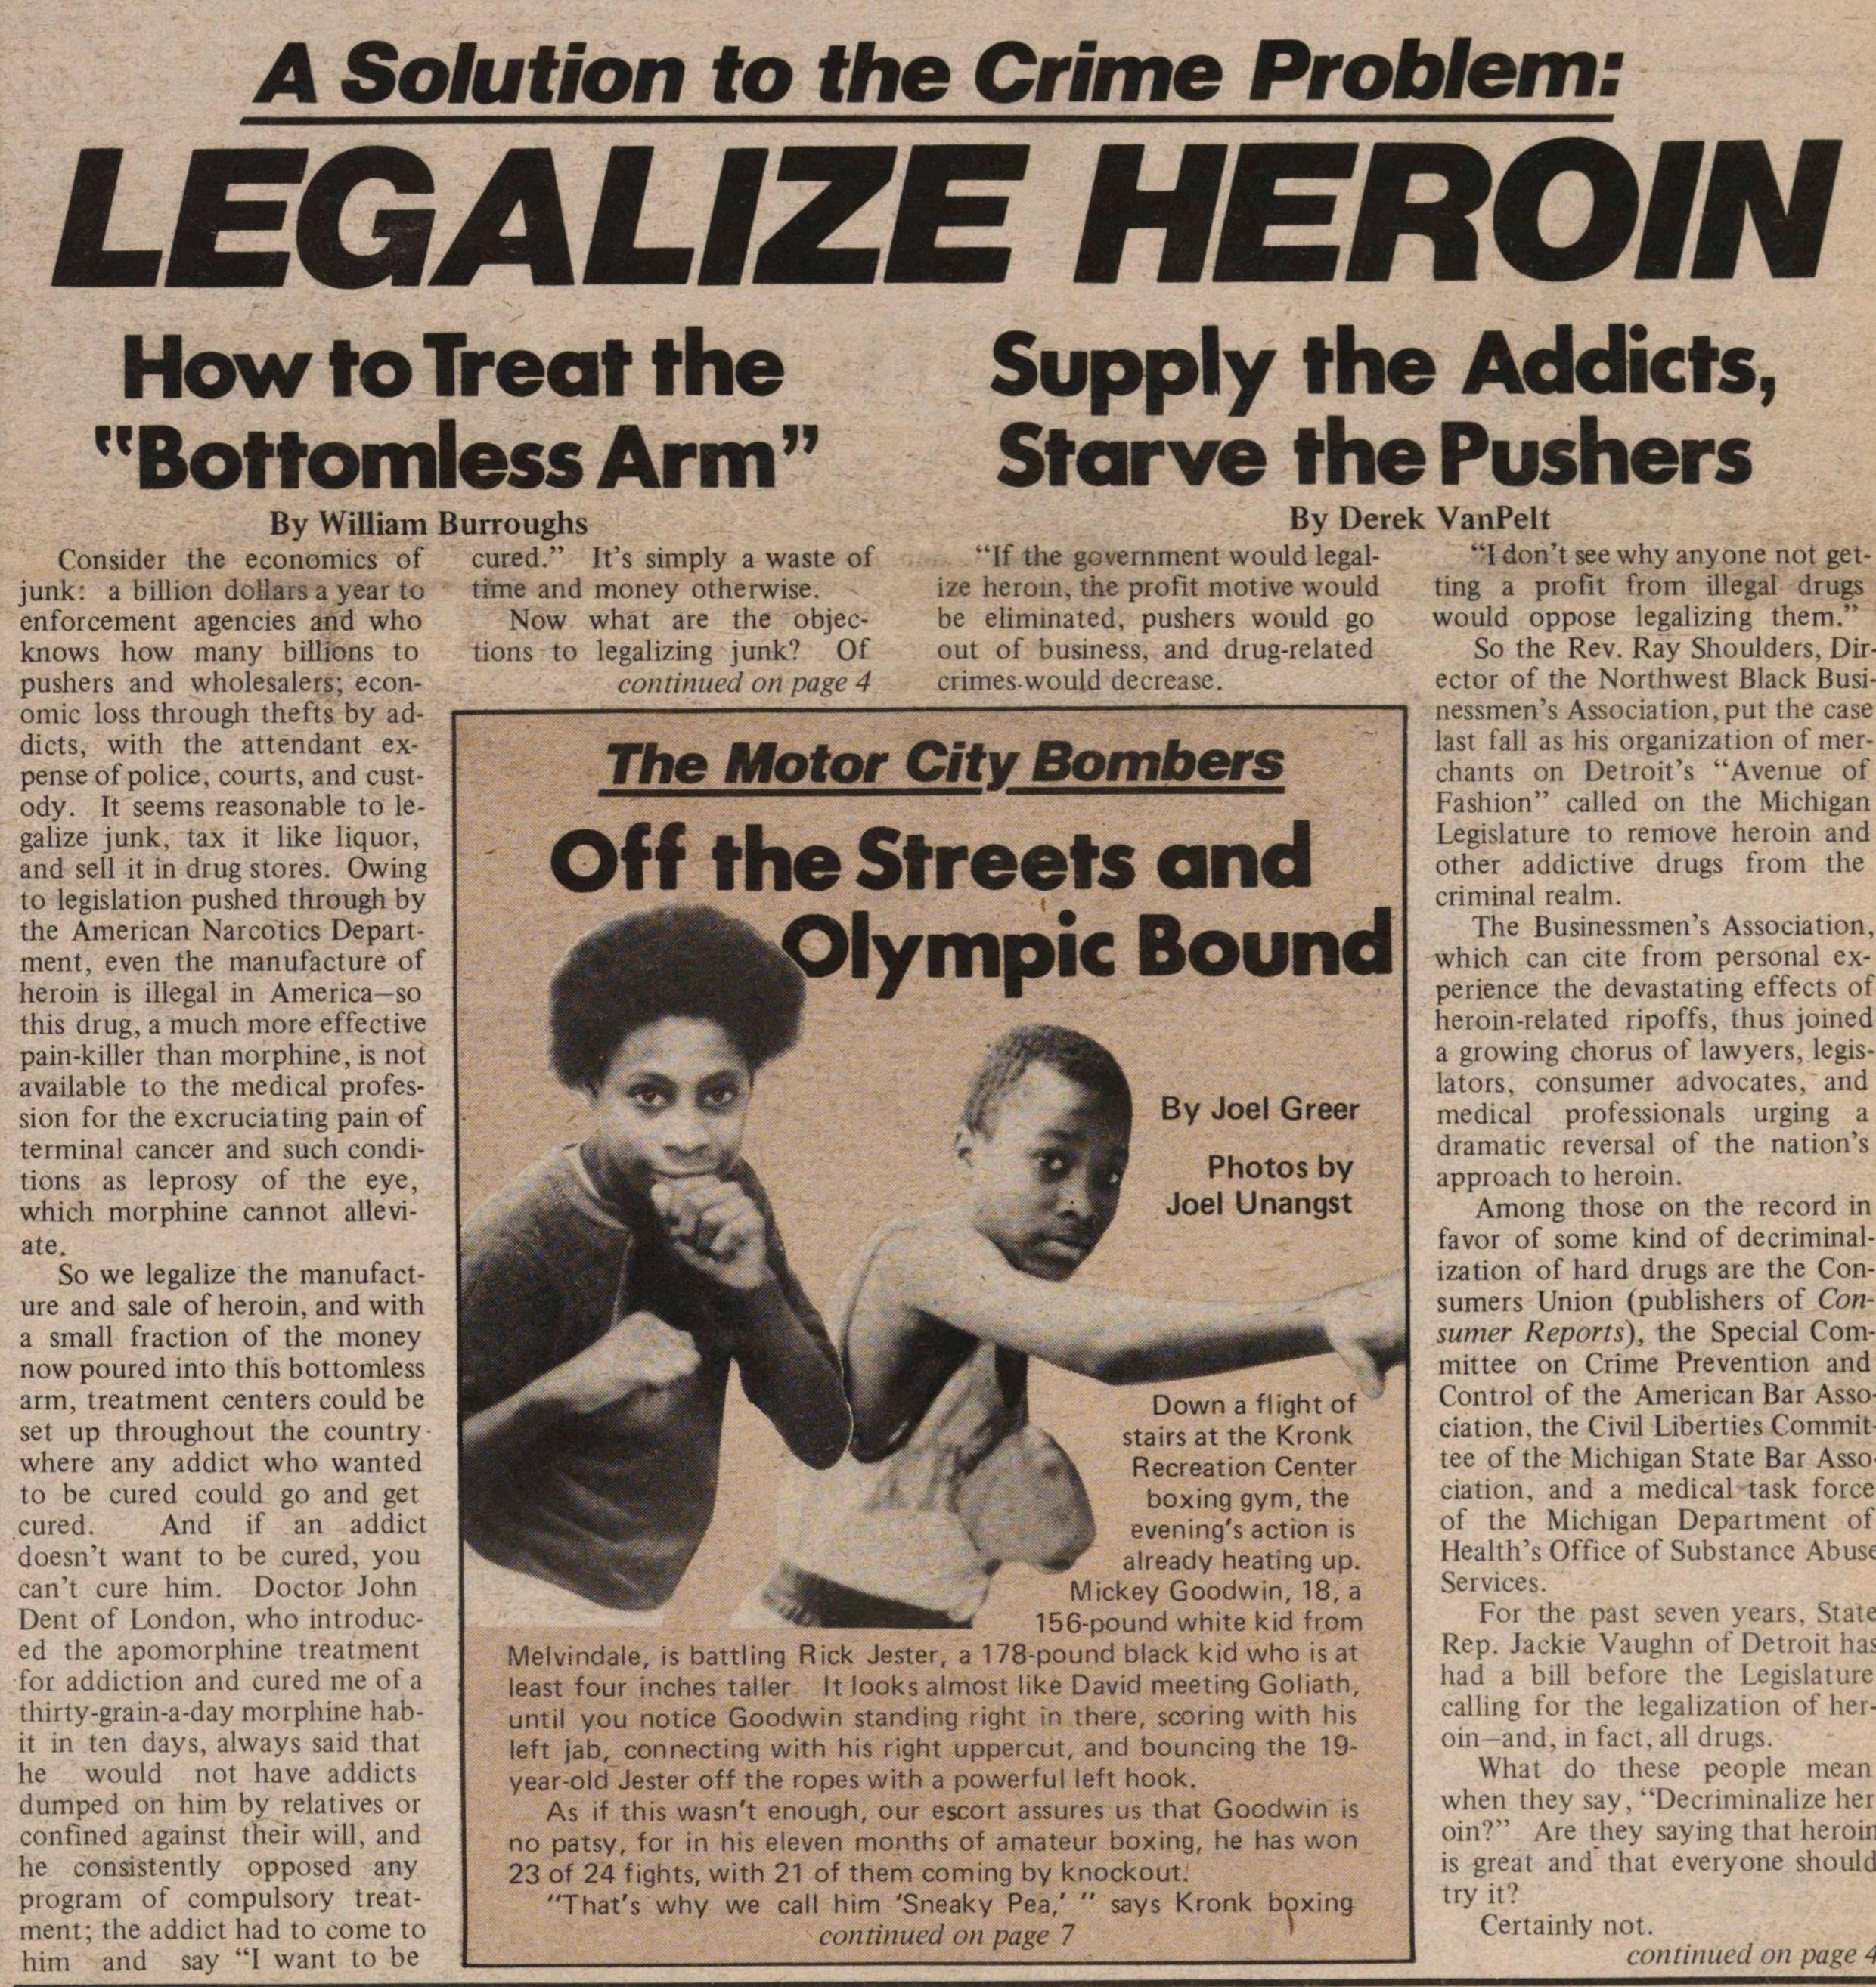 A Solution To The Crime Problem: Legalize Heroin image